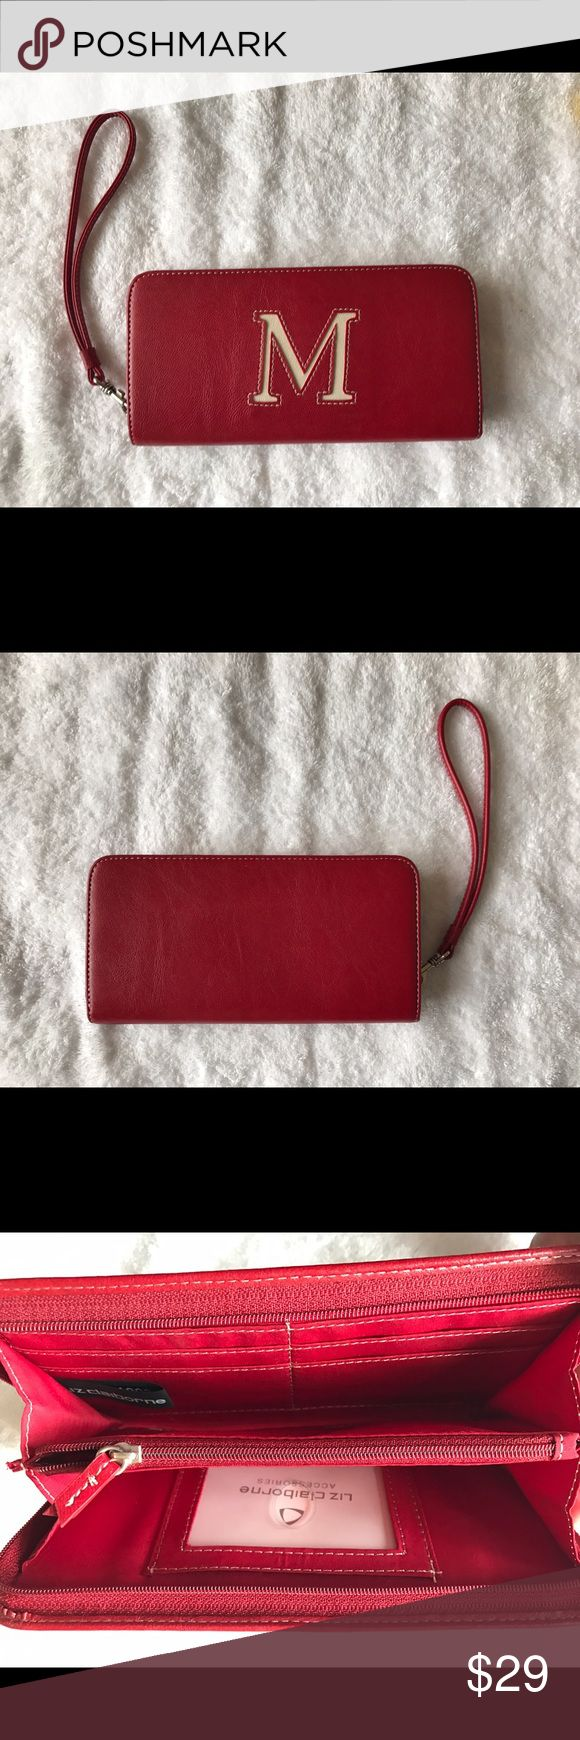 "Brand New Liz Claiborne Monogram Red ""M"" Wallet New Liz Claiborne Monogram Red ""M"" Wallet- polyvinyl- NWOT Liz Claiborne Bags Wallets"